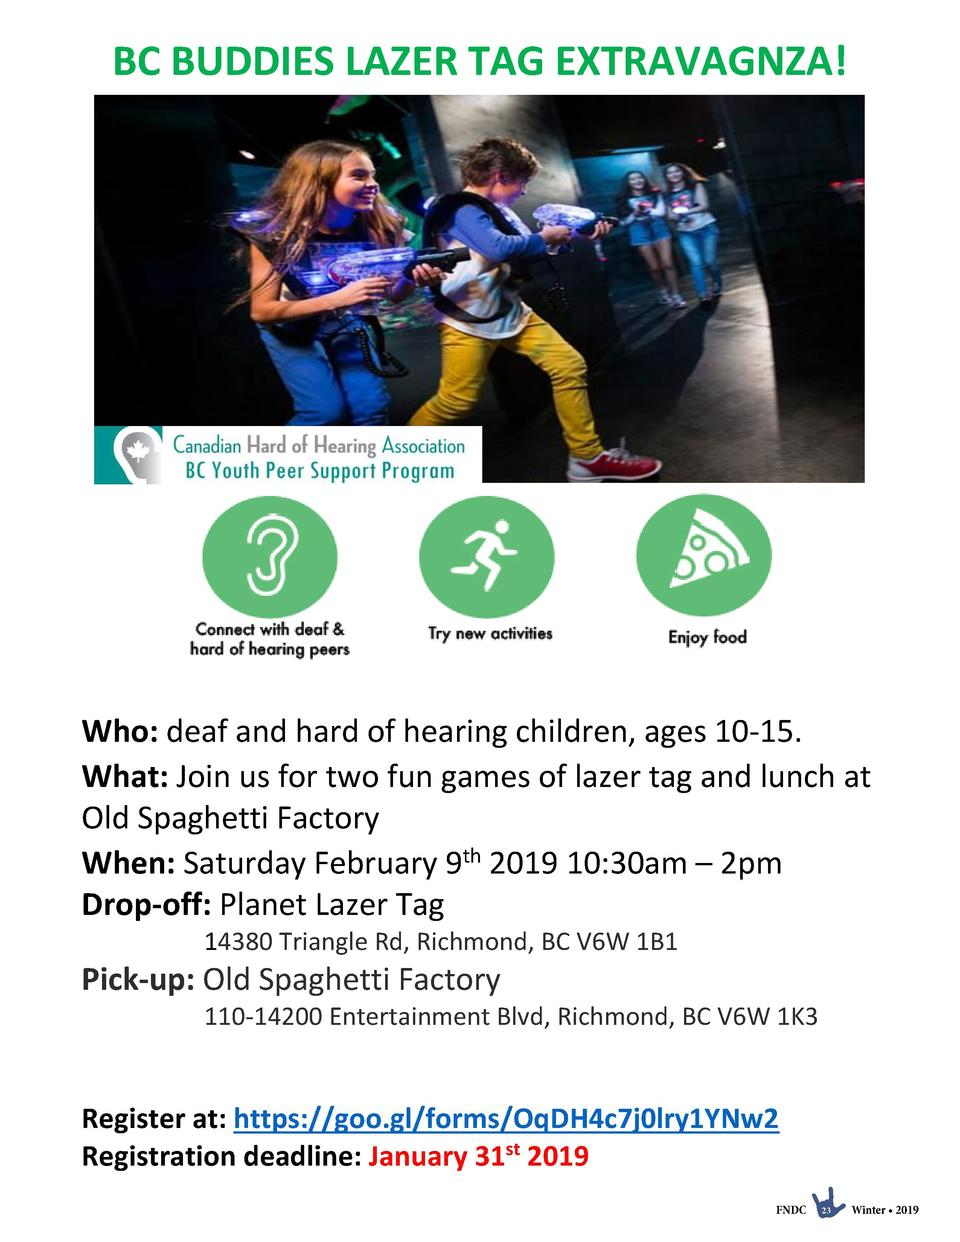 BC BUDDIES LAZER TAG EXTRAVAGNZA   Who  deaf and hard of hearing children, ages 10-15. What  Join us for two fun games of ...